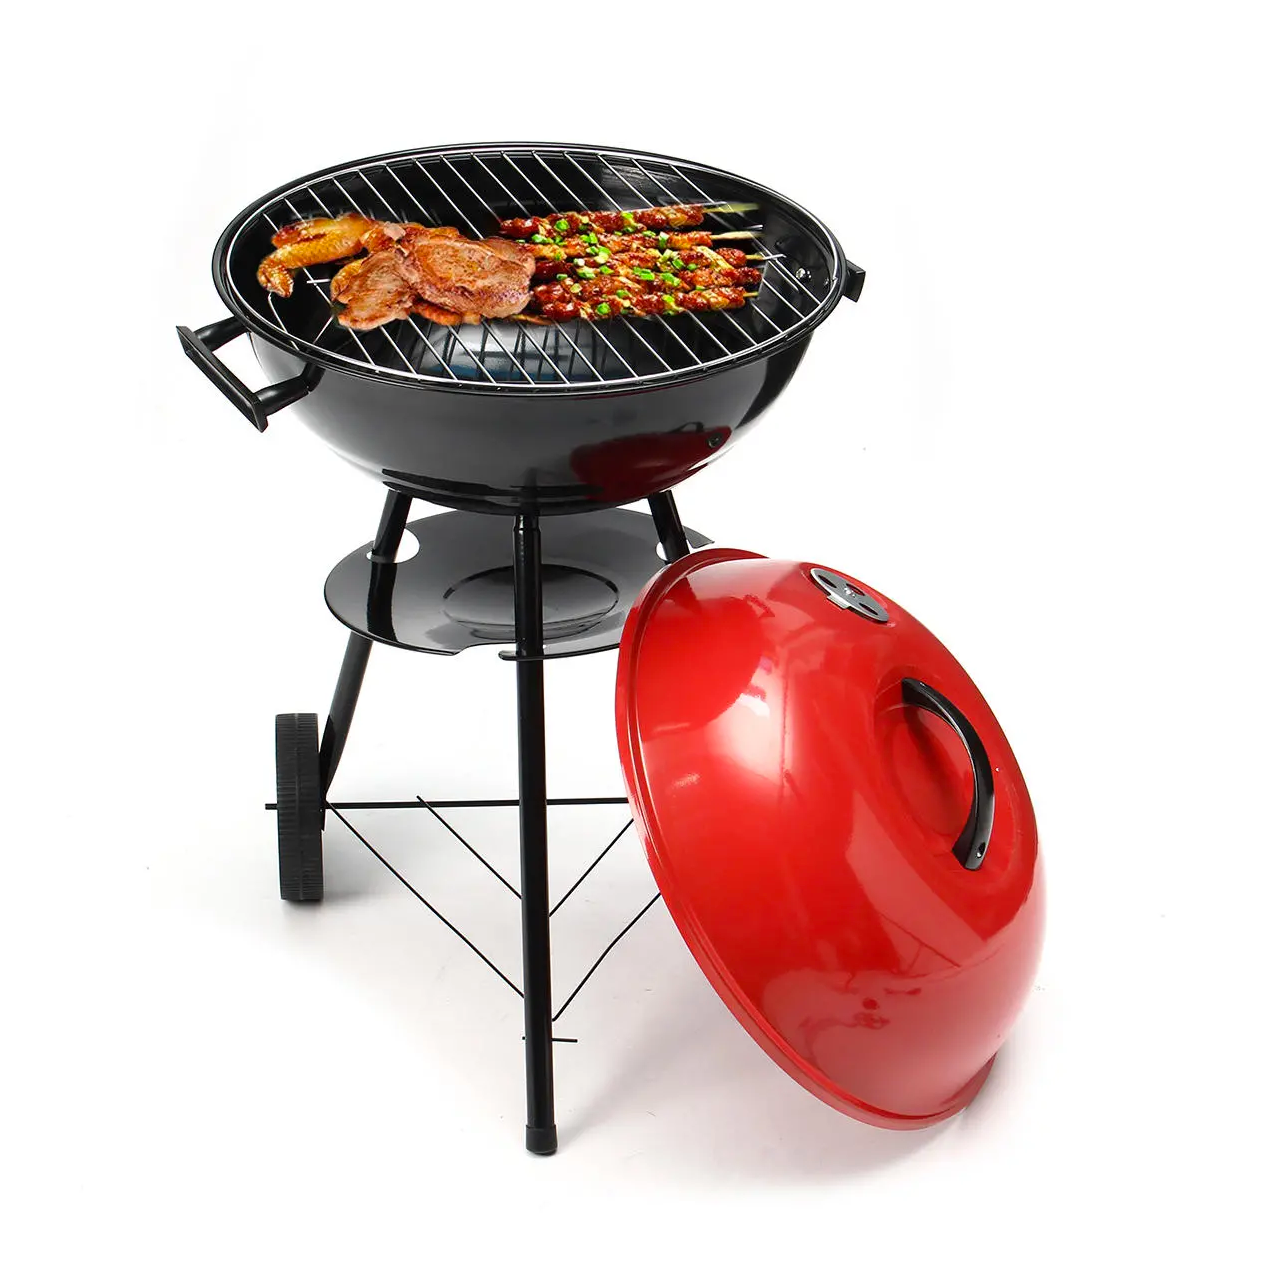 PorchPro™ Kettle Barbecue Charcoal Grill Red 17